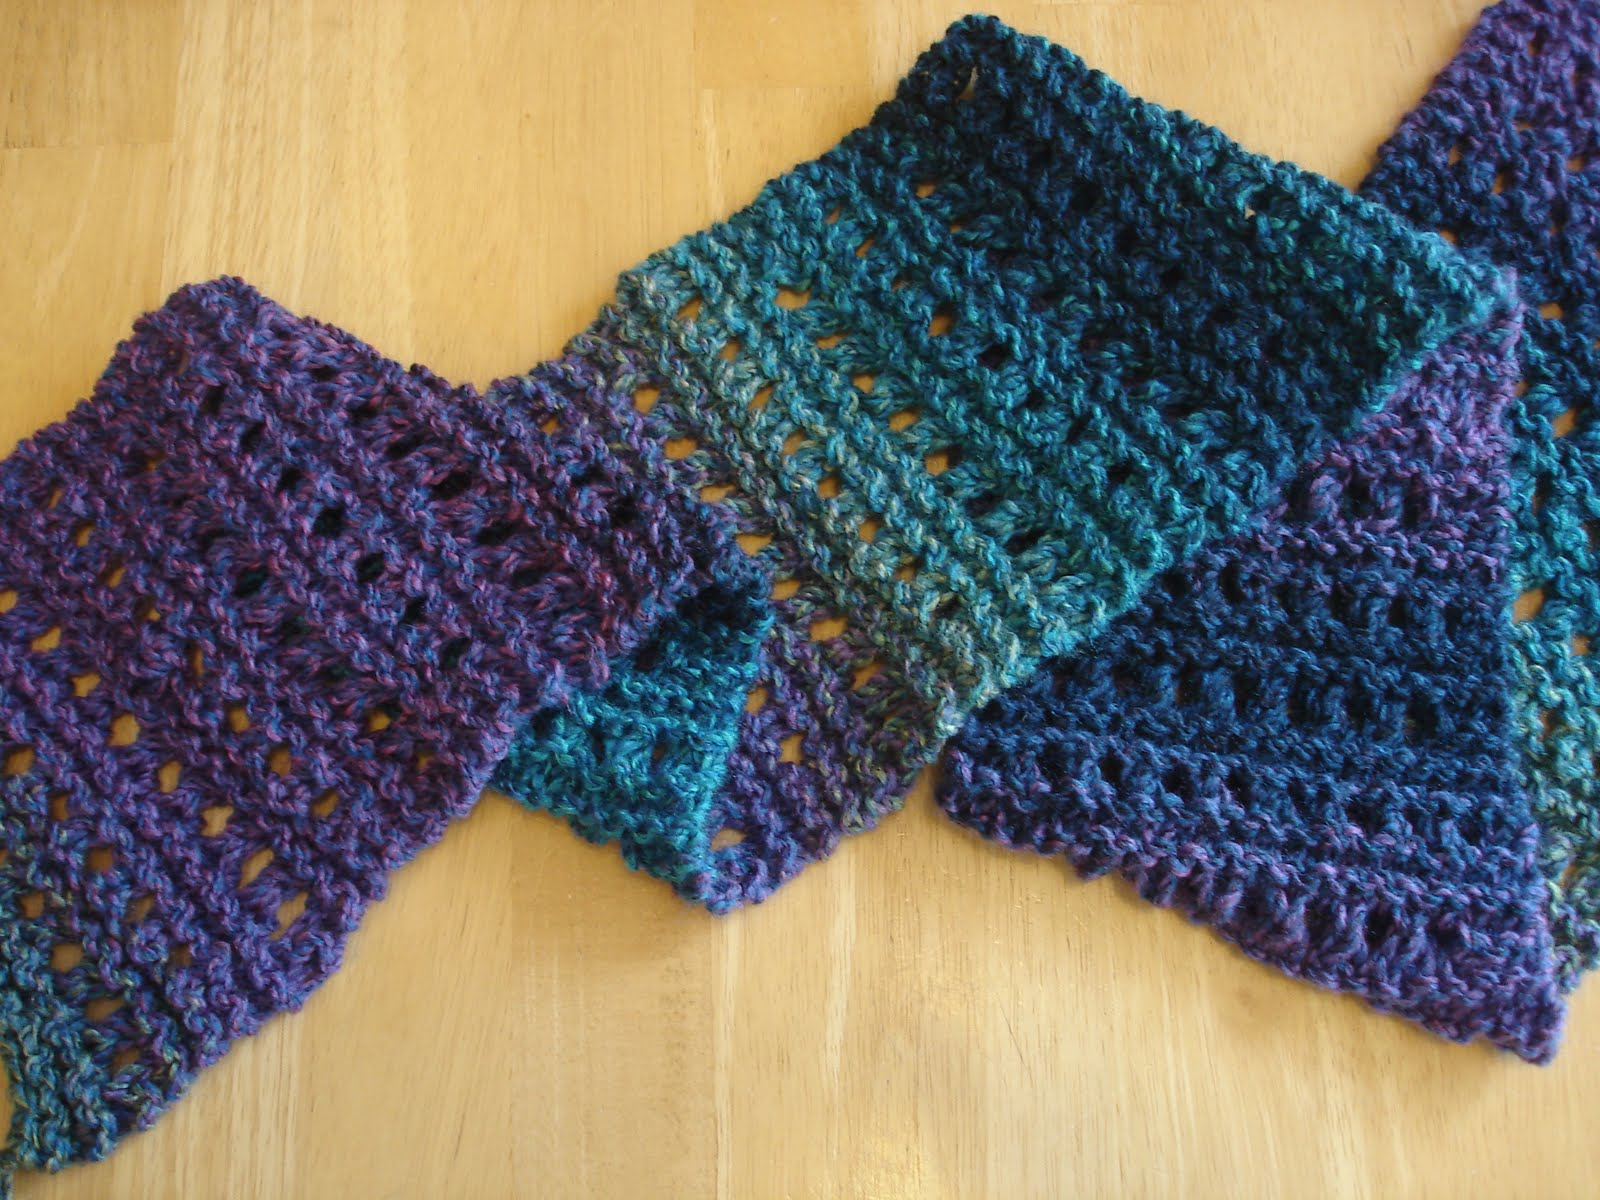 Knitting Patterns Scarf Free : Fiber Flux: Free Knitting Pattern: Tweedy Eyelet Scarf!